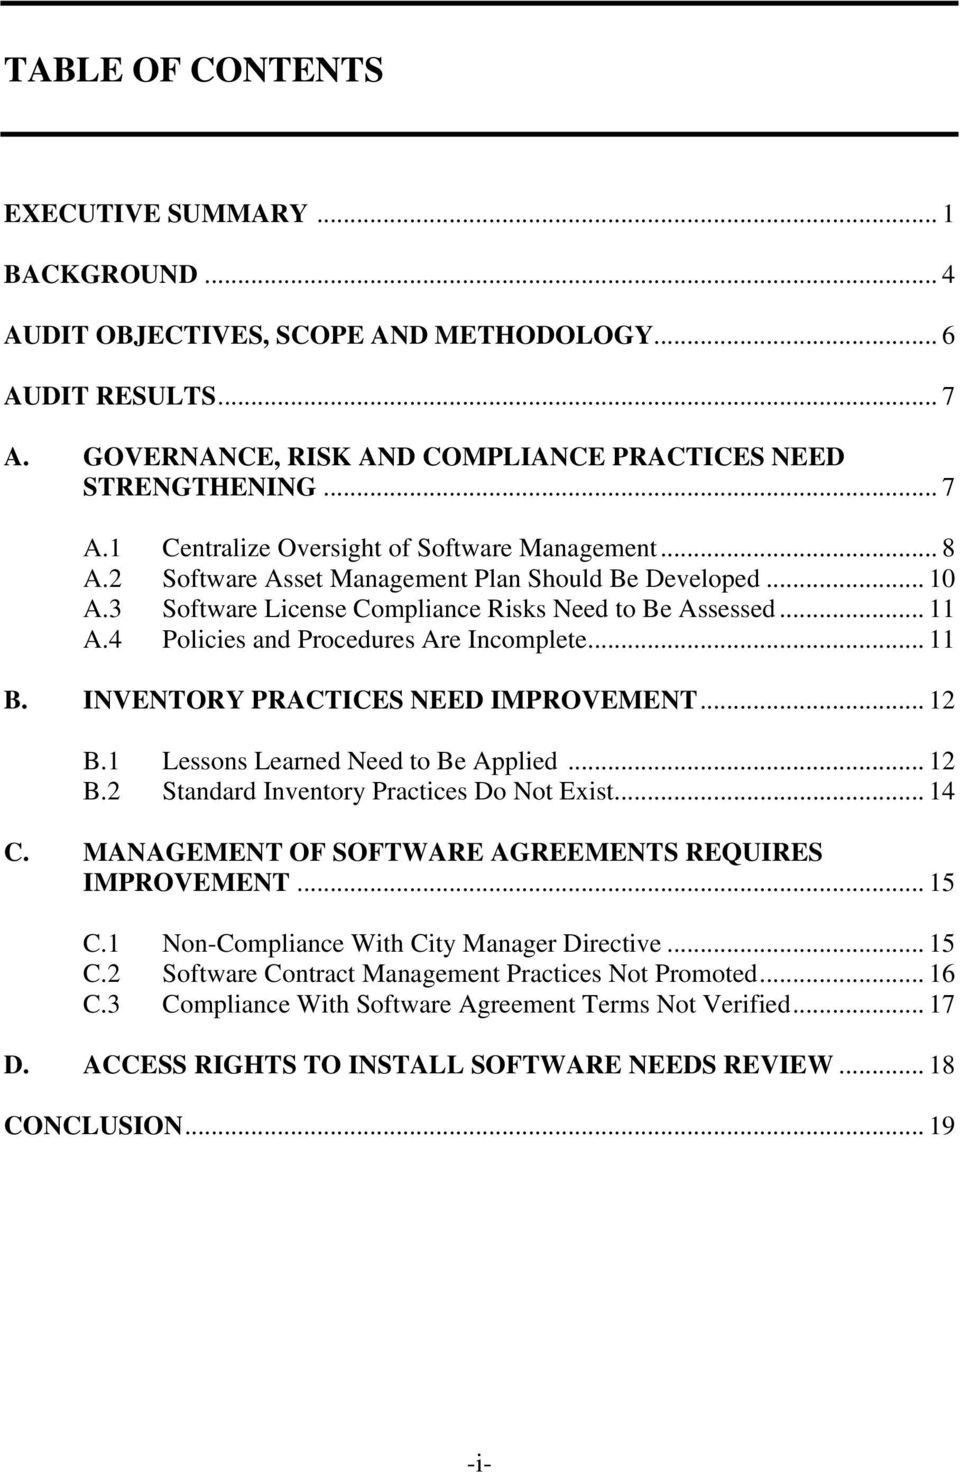 INVENTORY PRACTICES NEED IMPROVEMENT... 12 B.1 Lessons Learned Need to Be Applied... 12 B.2 Standard Inventory Practices Do Not Exist... 14 C. MANAGEMENT OF SOFTWARE AGREEMENTS REQUIRES IMPROVEMENT.